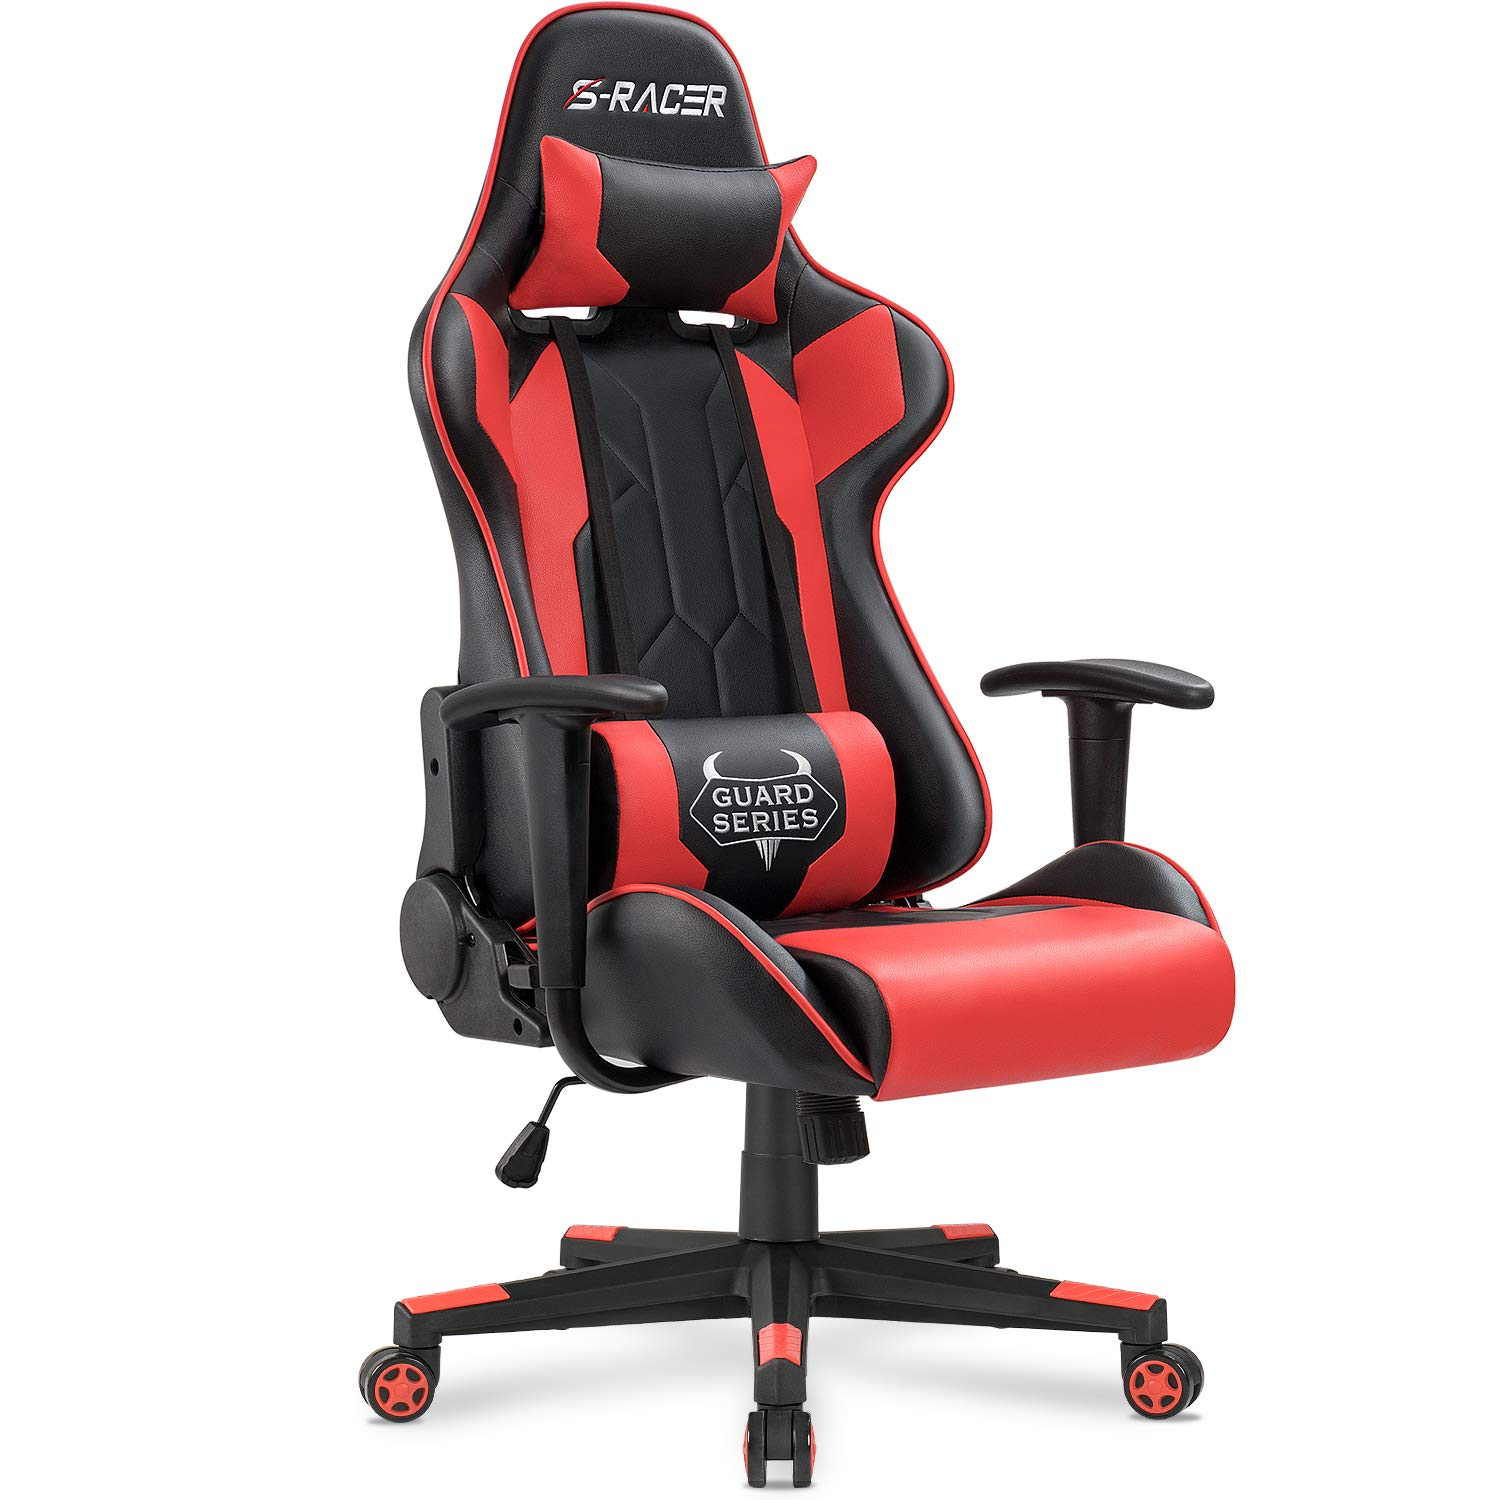 Homall Executive Swivel Leather Gaming Chair, Racing Style High Back Chair with Lumbar Support and Headrest (NSR/Red) by Homall (Image #1)